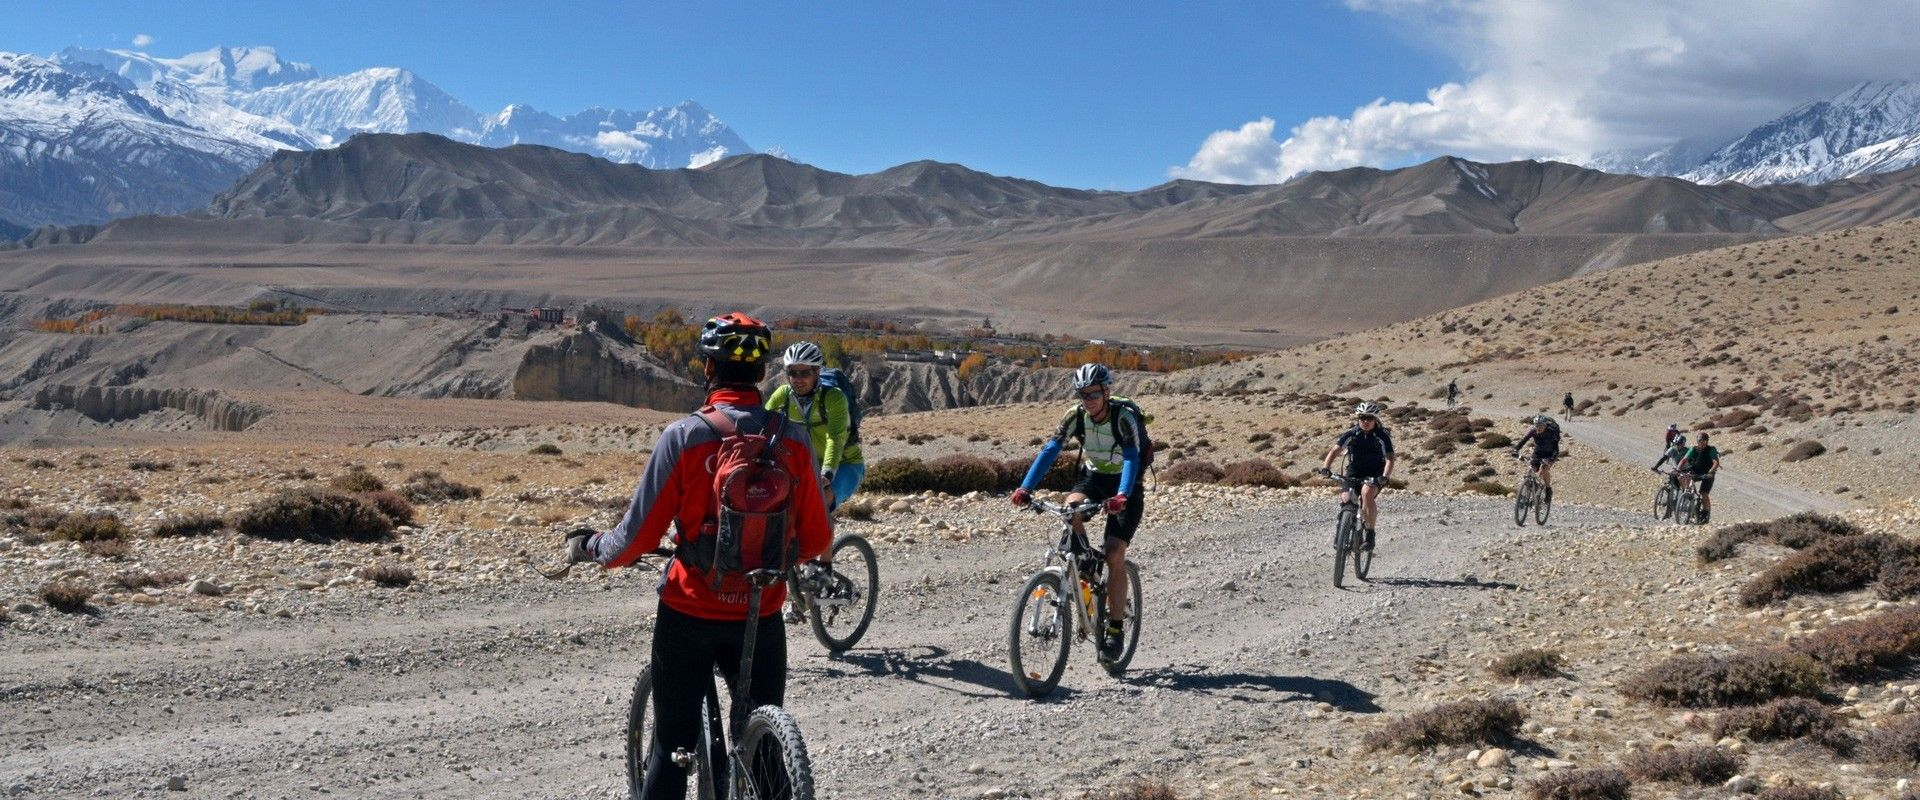 Nepal - Biking Tour From compactly populated cities to the rustic mountainous terrains of Nepal, cycling is the just the thing to get you there. See more at: http://www.buddhatravel.com.au/holi…/nepal-bicycle-tour.html   Call Us : 1300 116 746 Visit Us : www.buddhatravel.com.au Email Us : info@buddhatravel.com.au  We Guarantee you the Best Holiday Package!